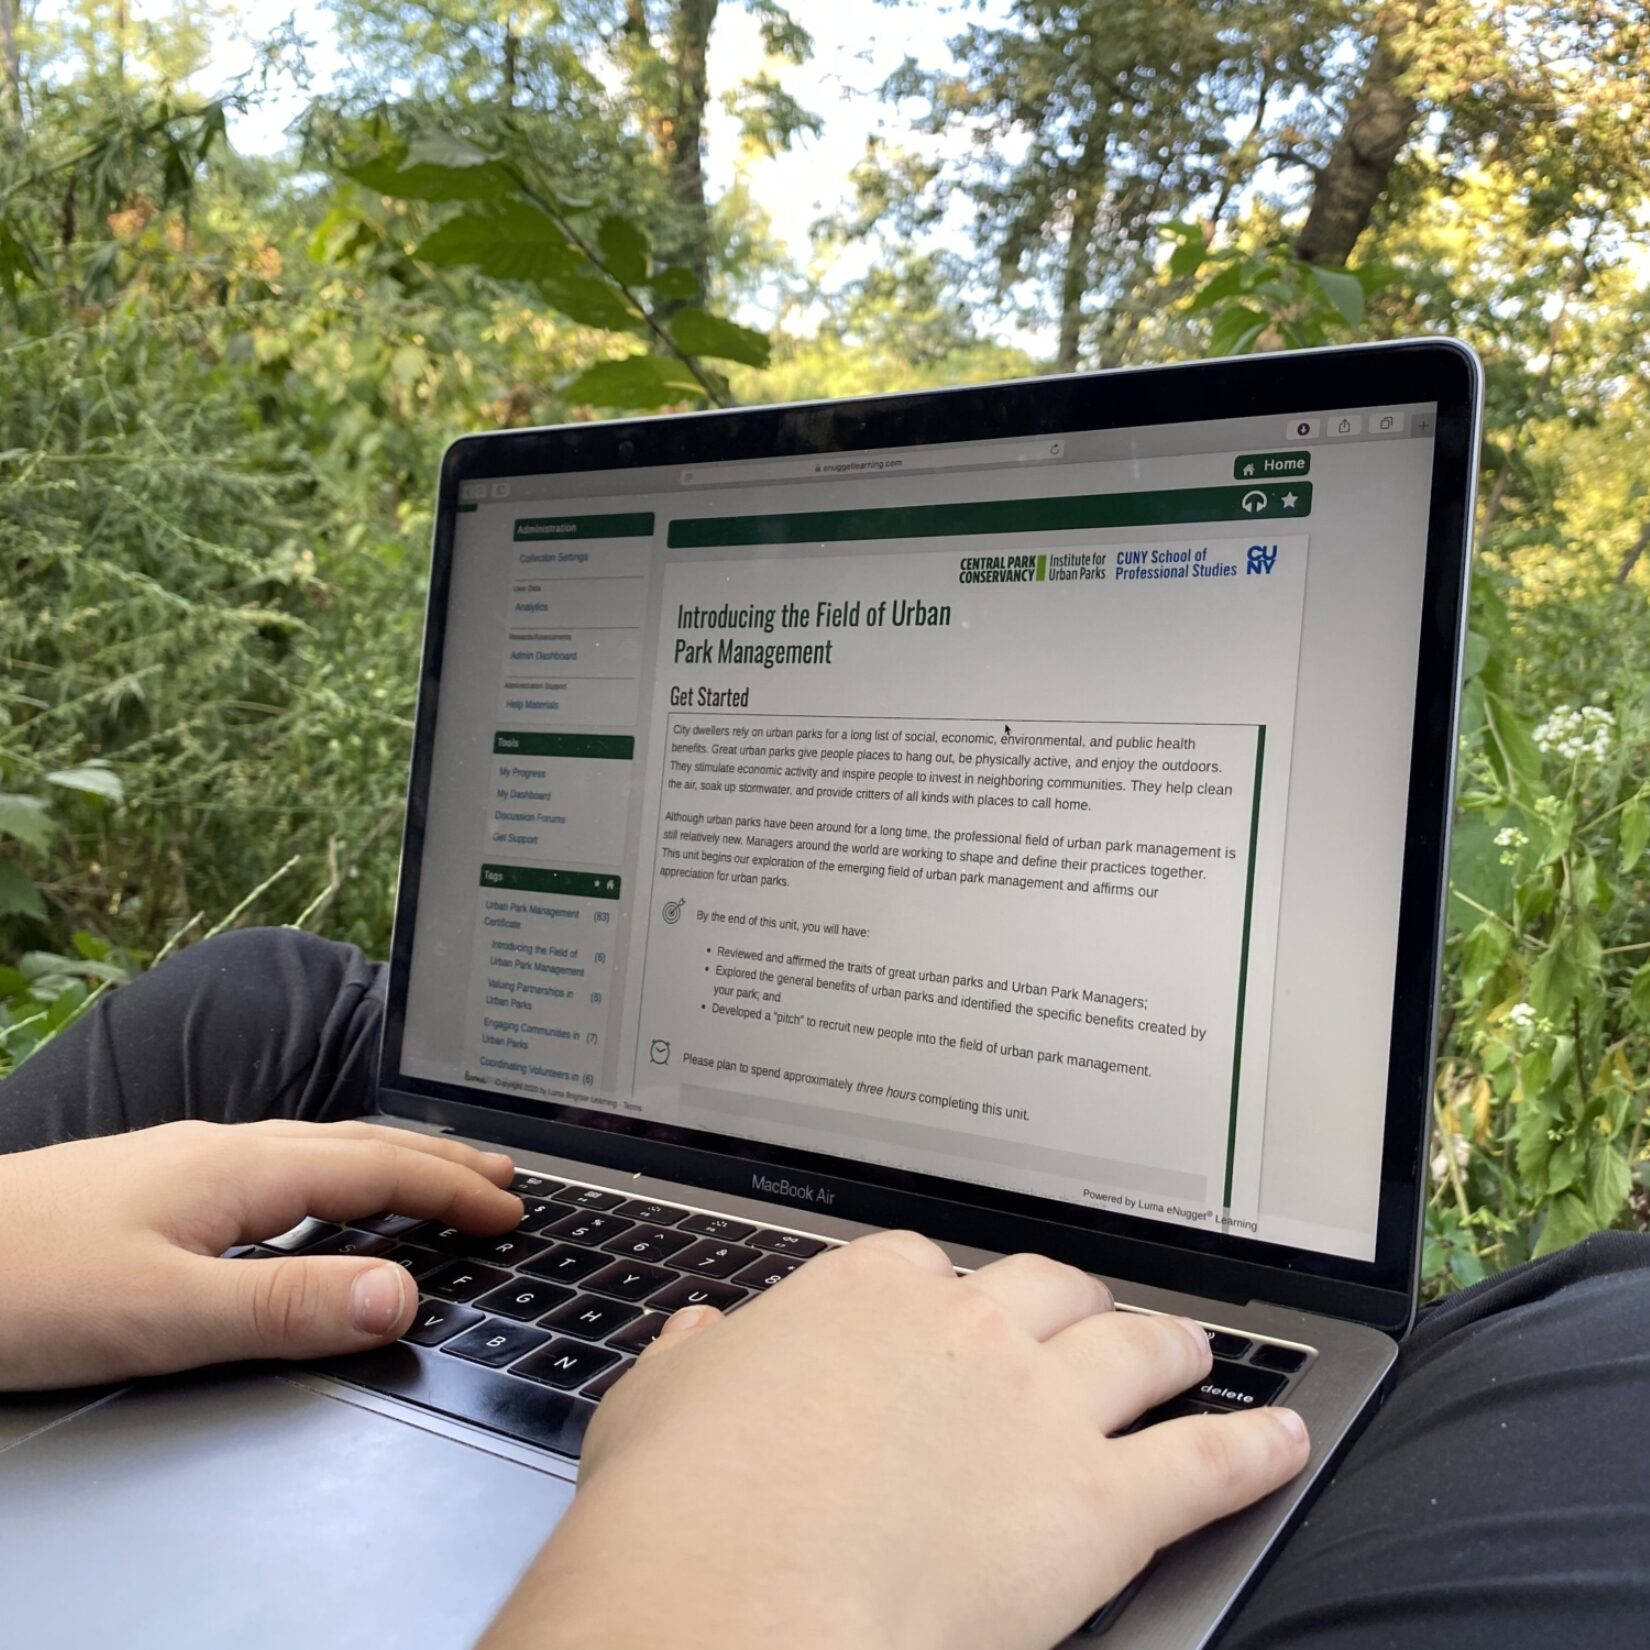 A laptop opened to an Urban Park Management certificate page